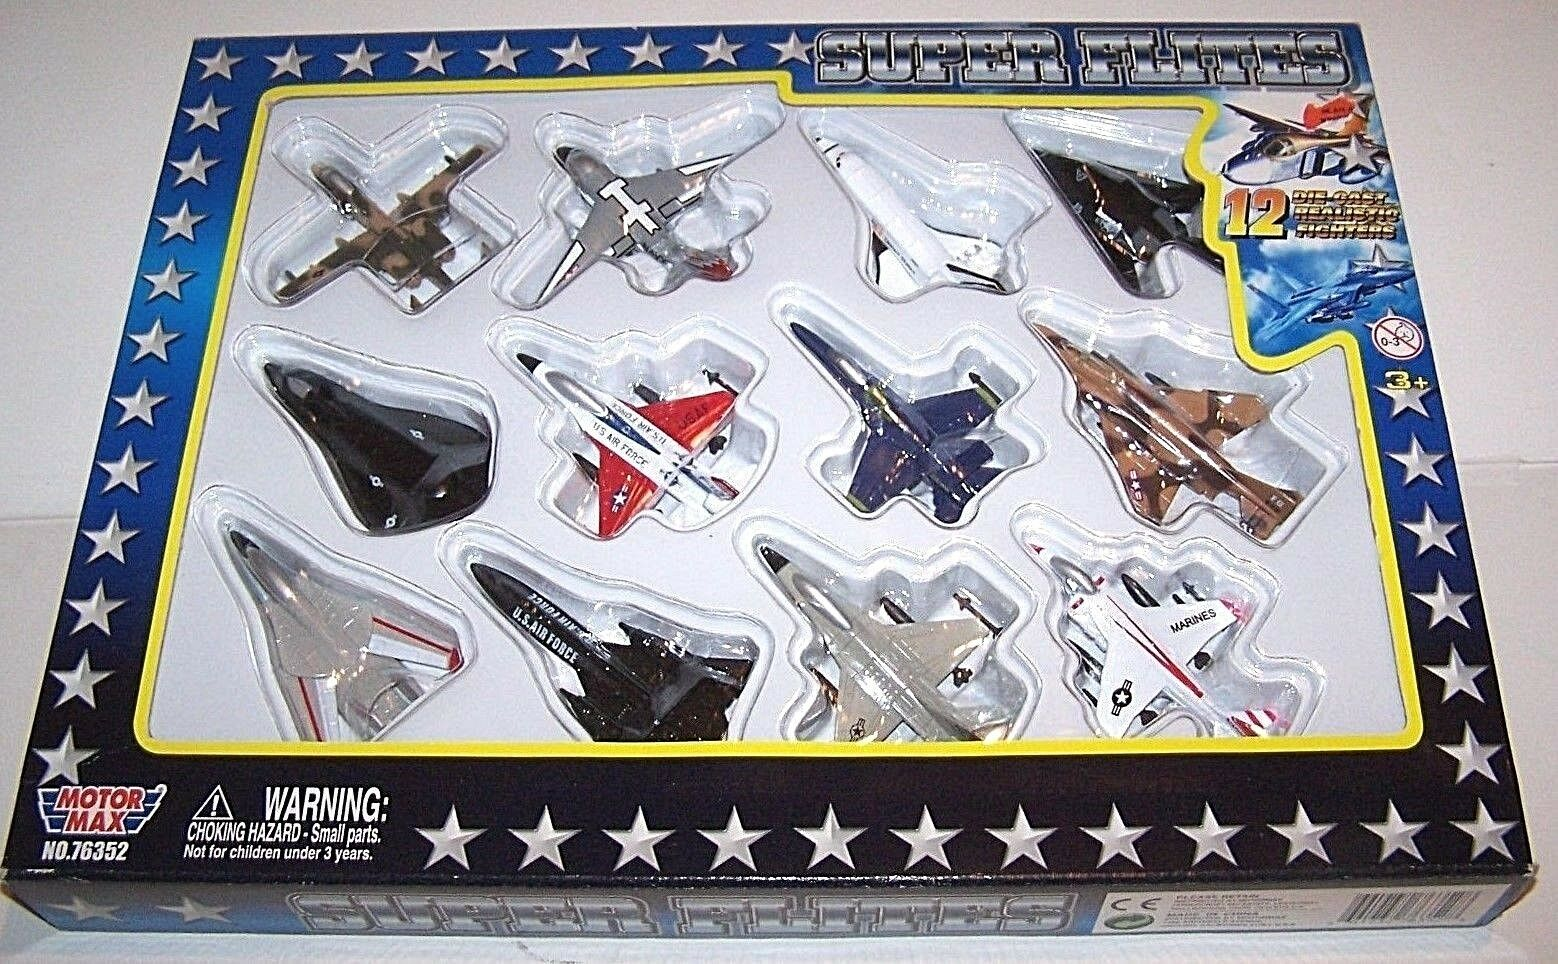 Motor Max Super Flites 76352 diecast military Jets Stealth navette spatiale rare